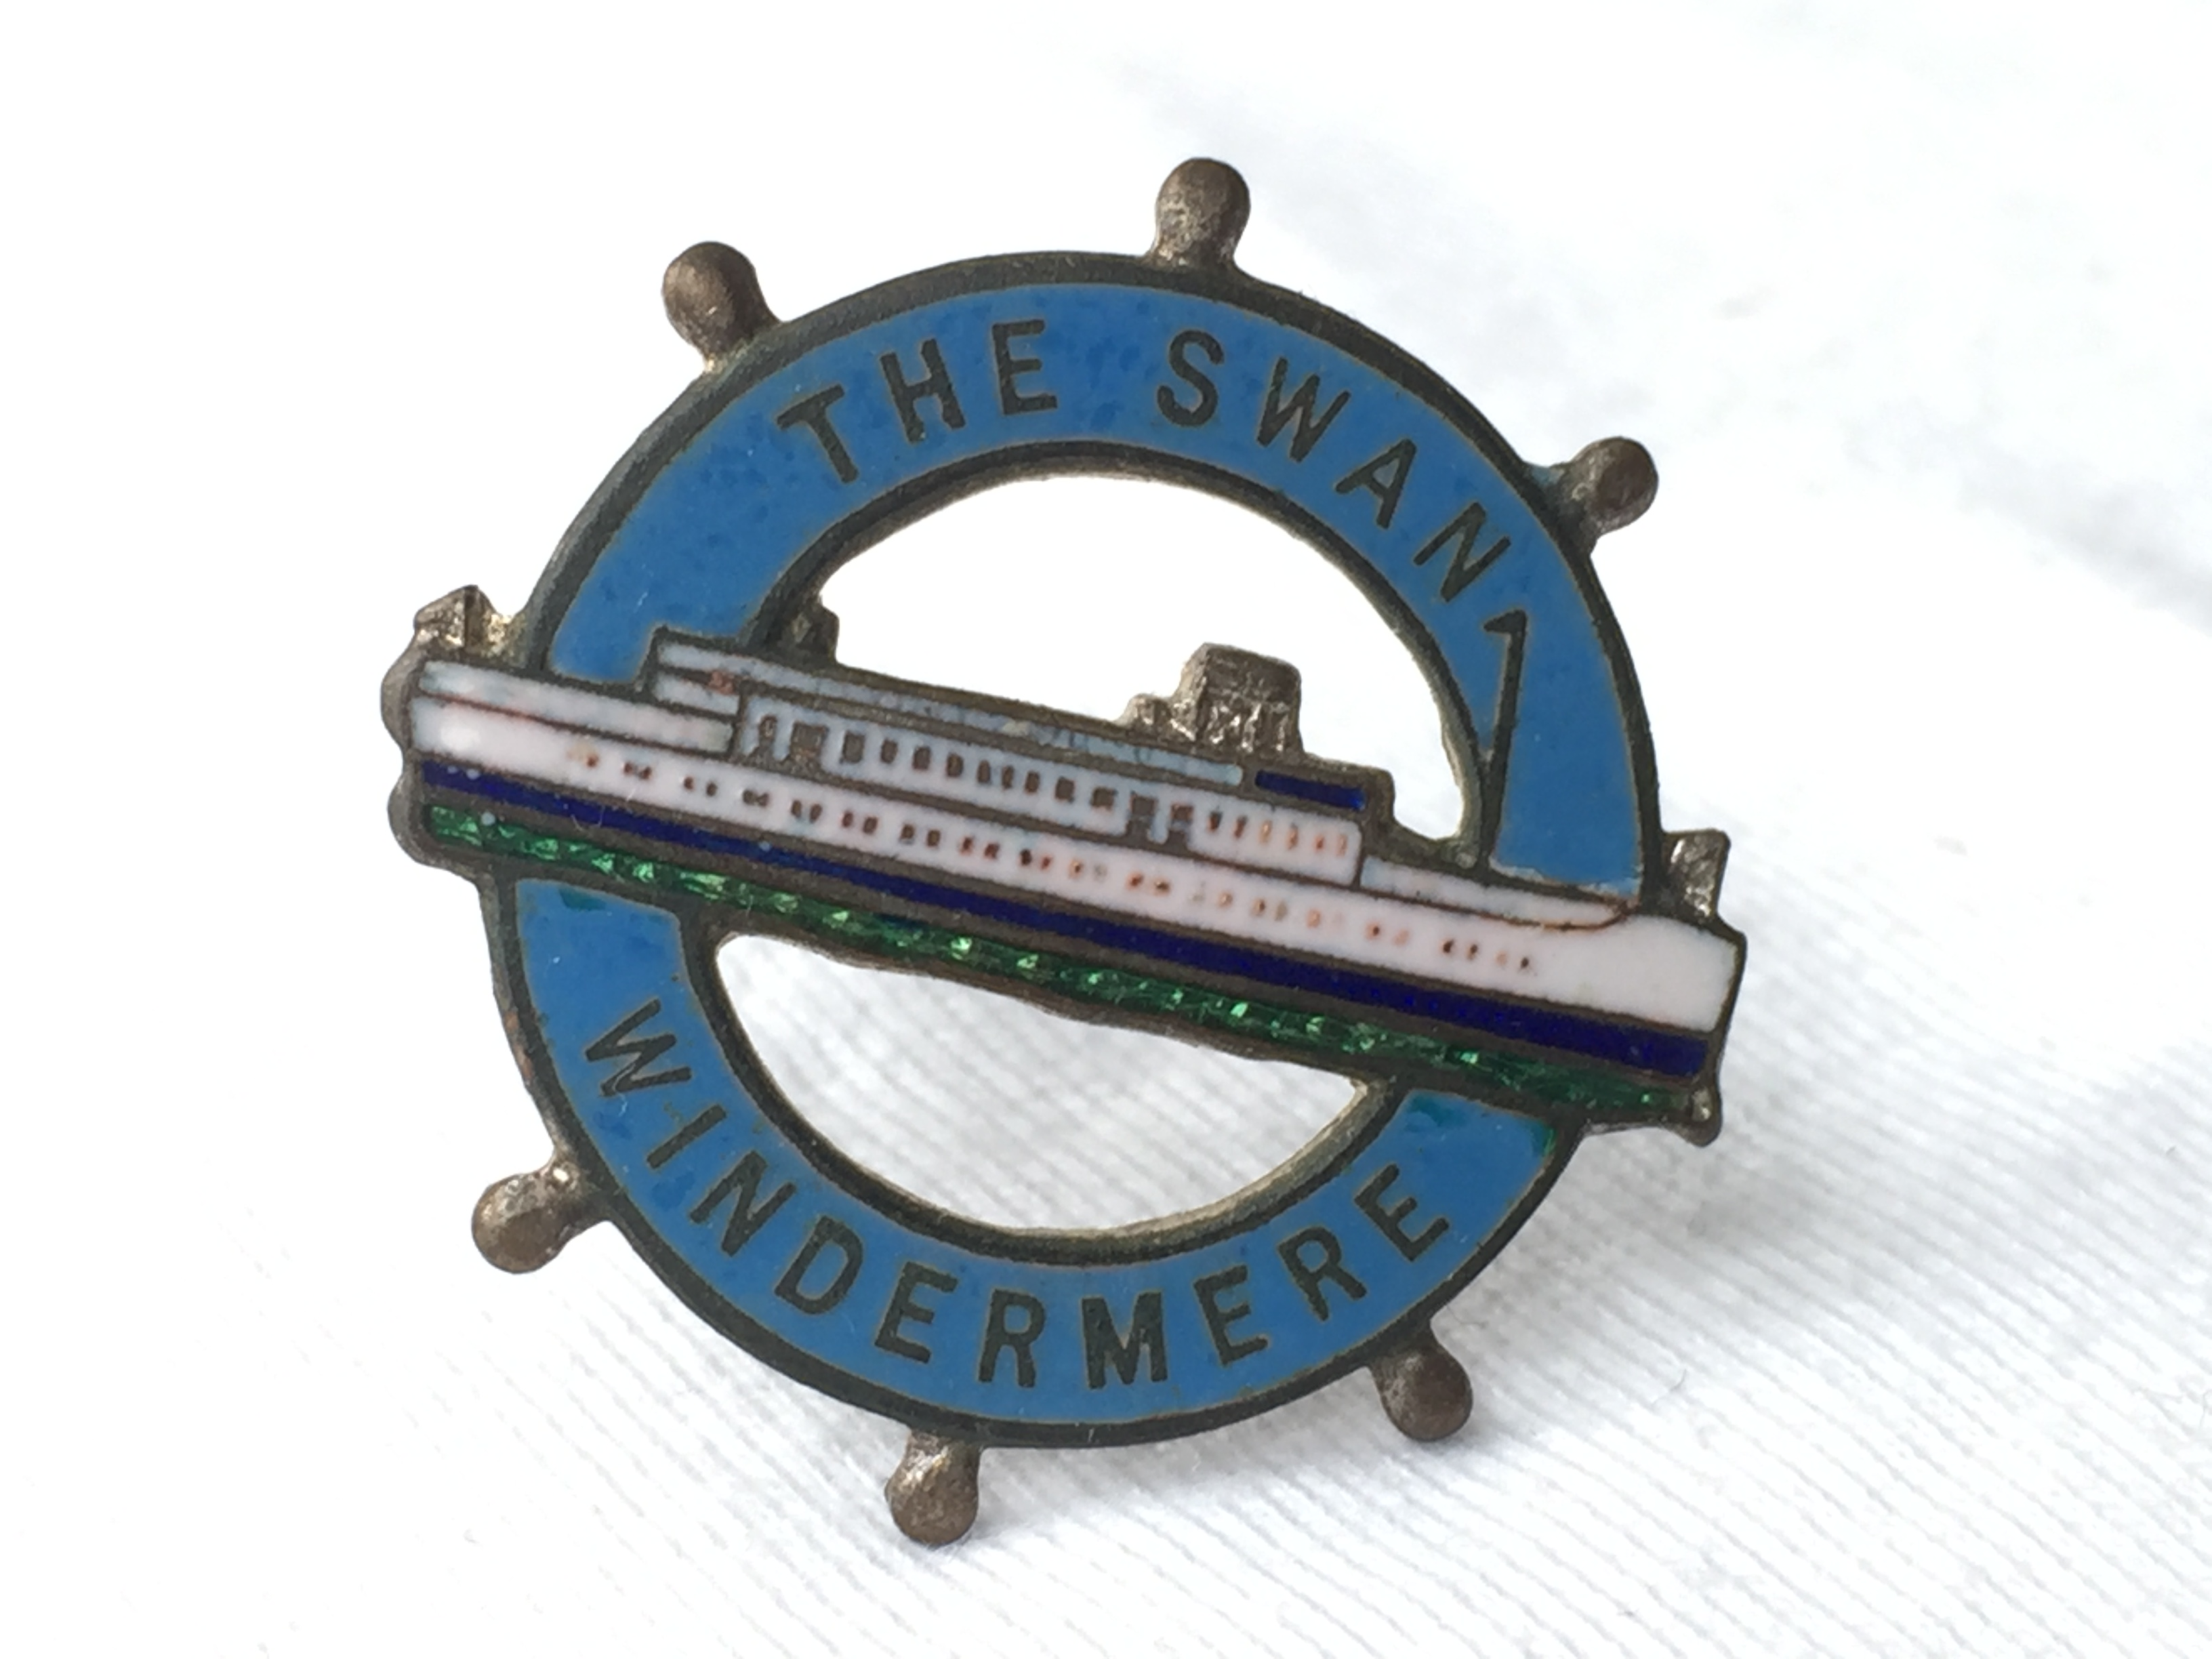 LAPEL PIN BADGE FROM THE WINDERMERE STEAMERS LINE VESSEL THE SWAN